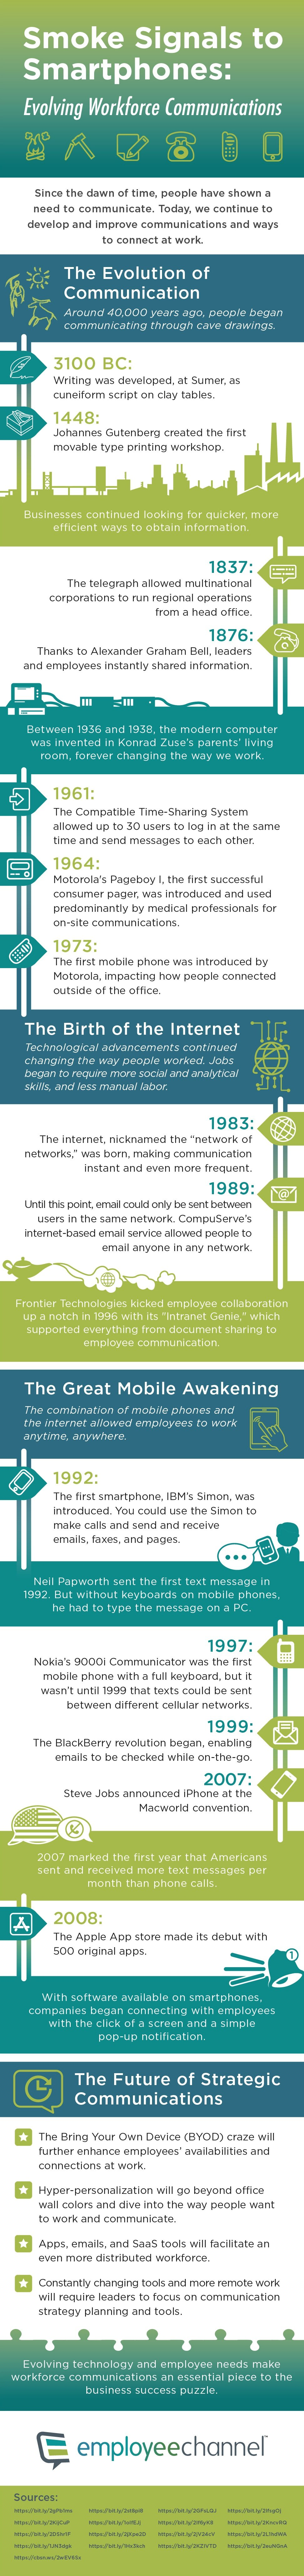 The History of Workplace Communication